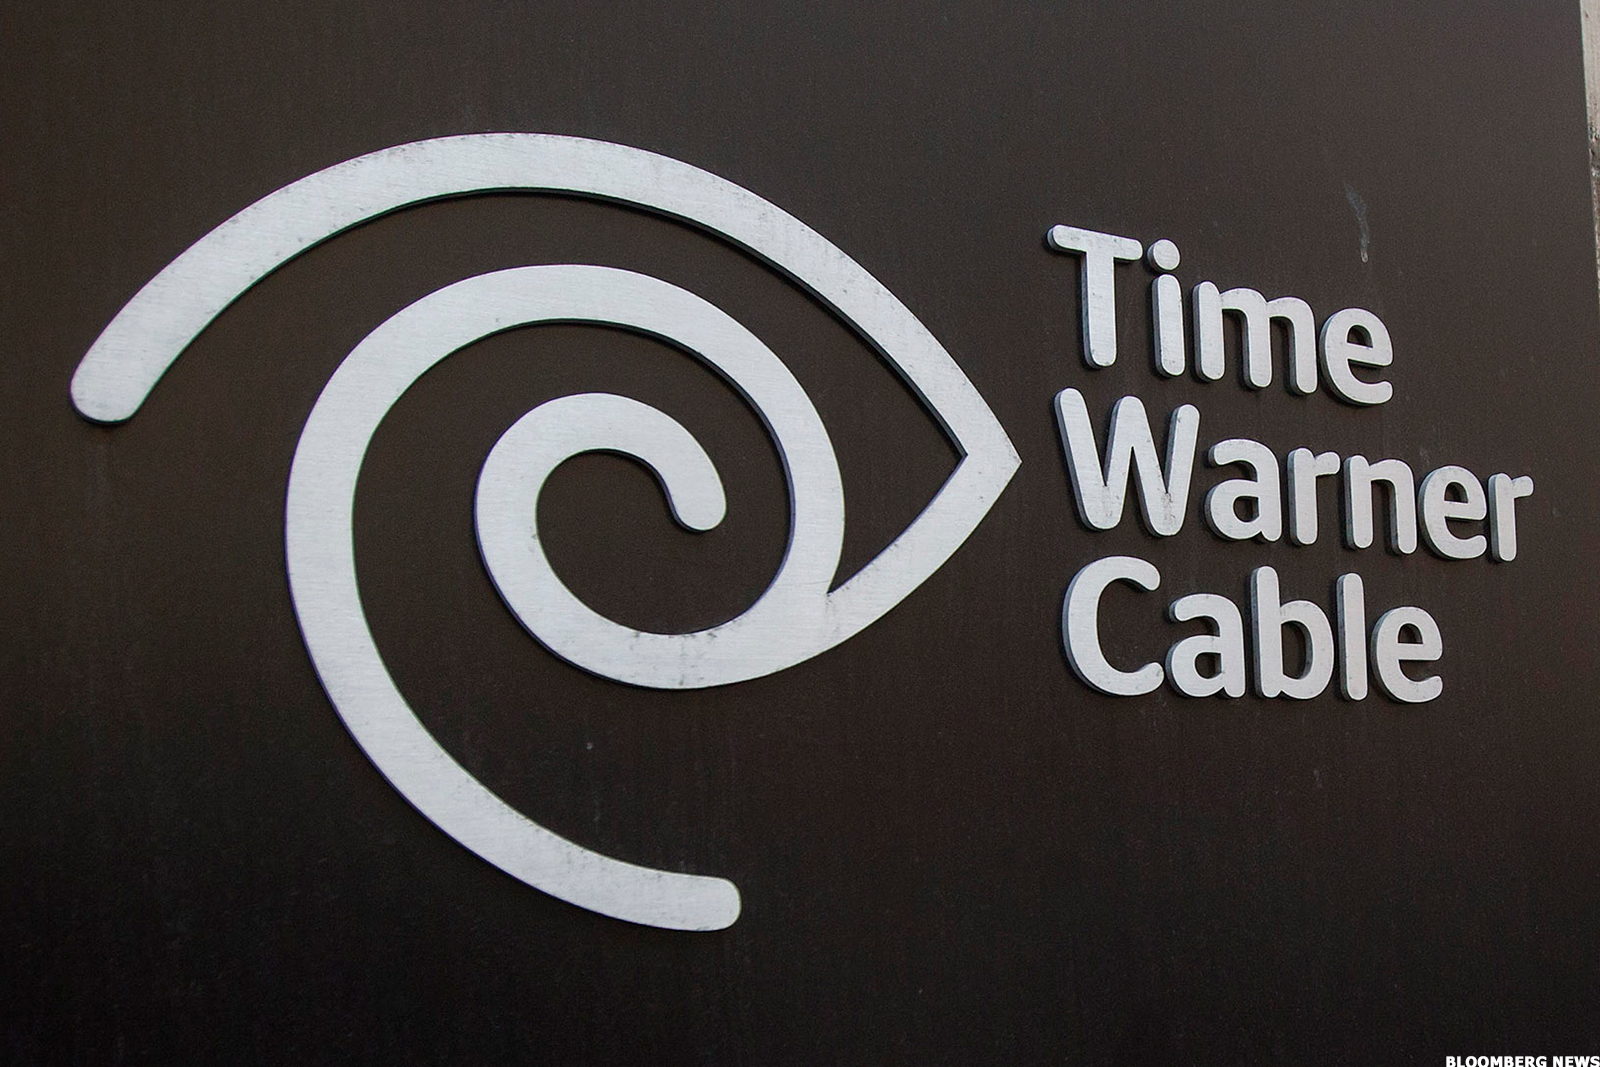 timewarnercable2?resize=665%2C443&ssl=1 time warner cable wiring diagrams cable tv hook up diagrams, time time warner cable phone wiring diagram at edmiracle.co